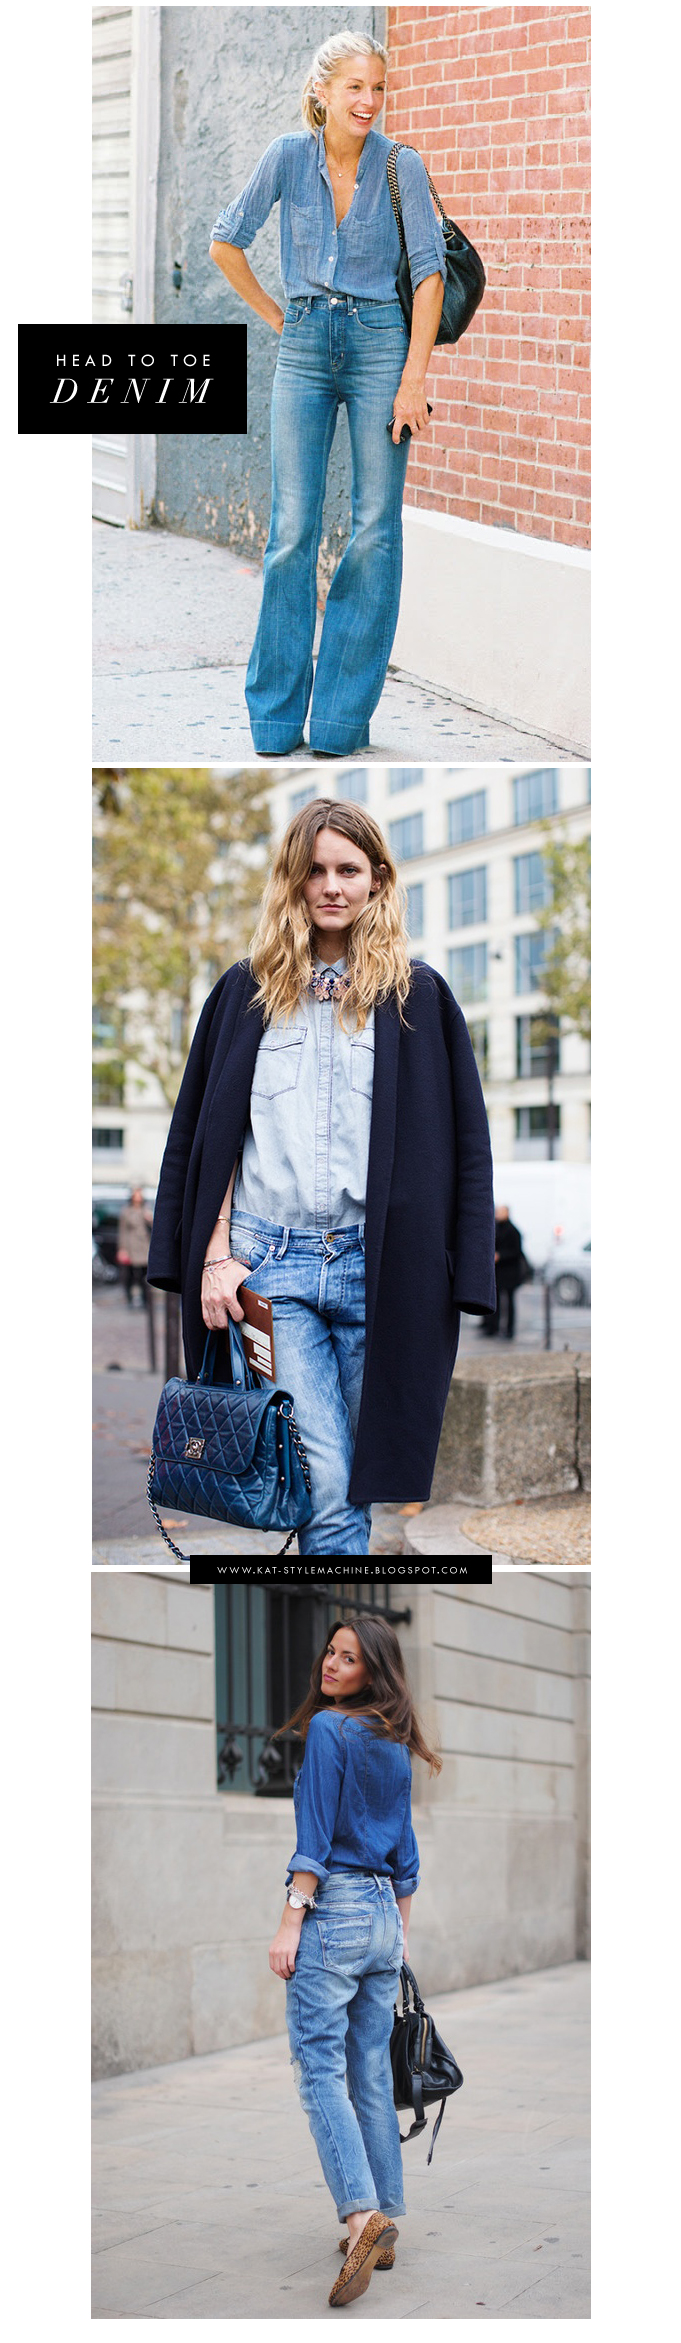 street style how to wear denim head to toe effortless style